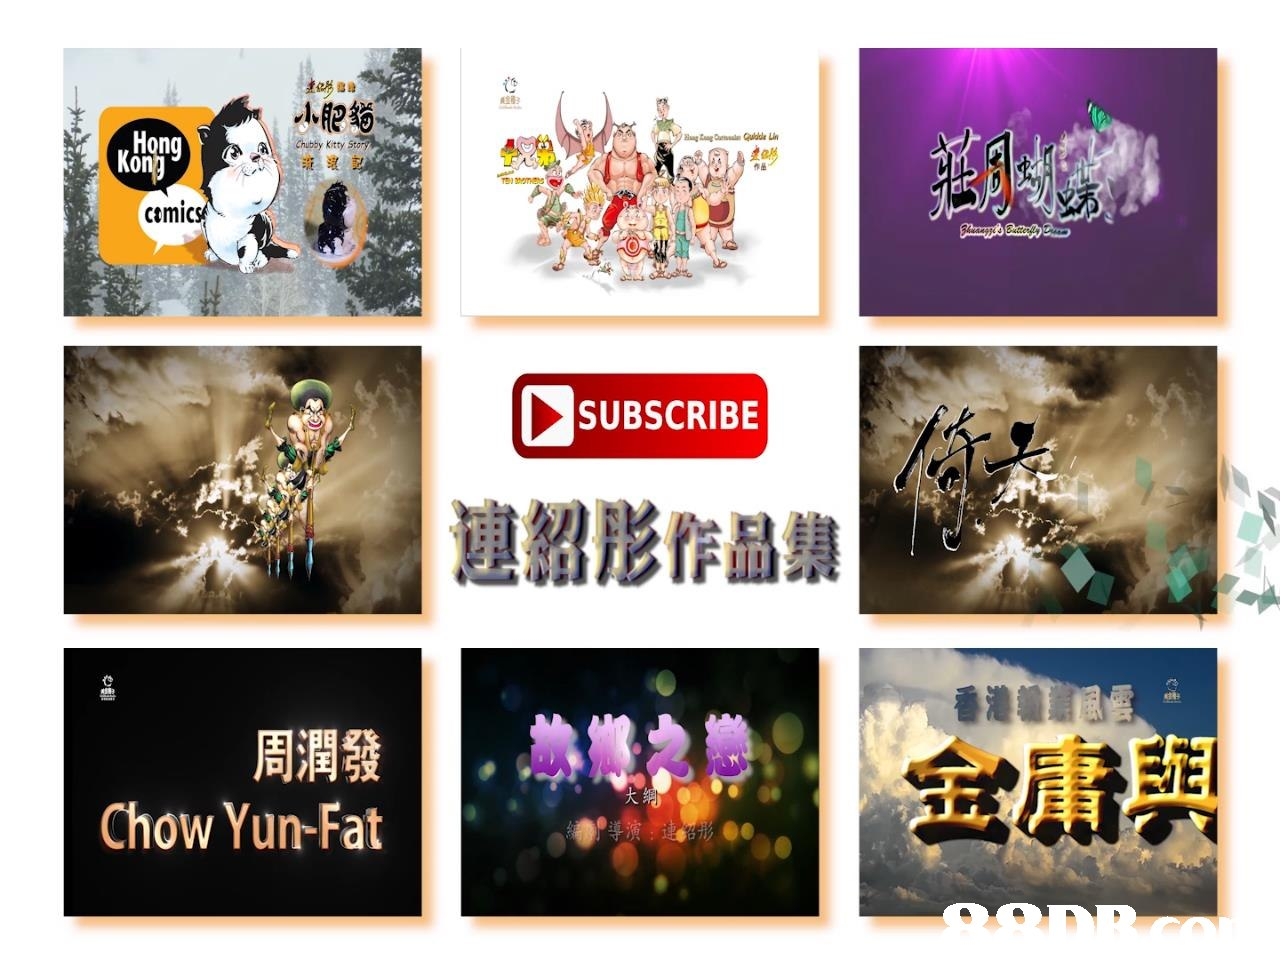 趁影 Hong Kong Kitty Story ctmic SUBSCRIBE 建紹彤作品 香港输, 周潤發 Chow Yun-Fat  text,graphic design,advertising,font,brand